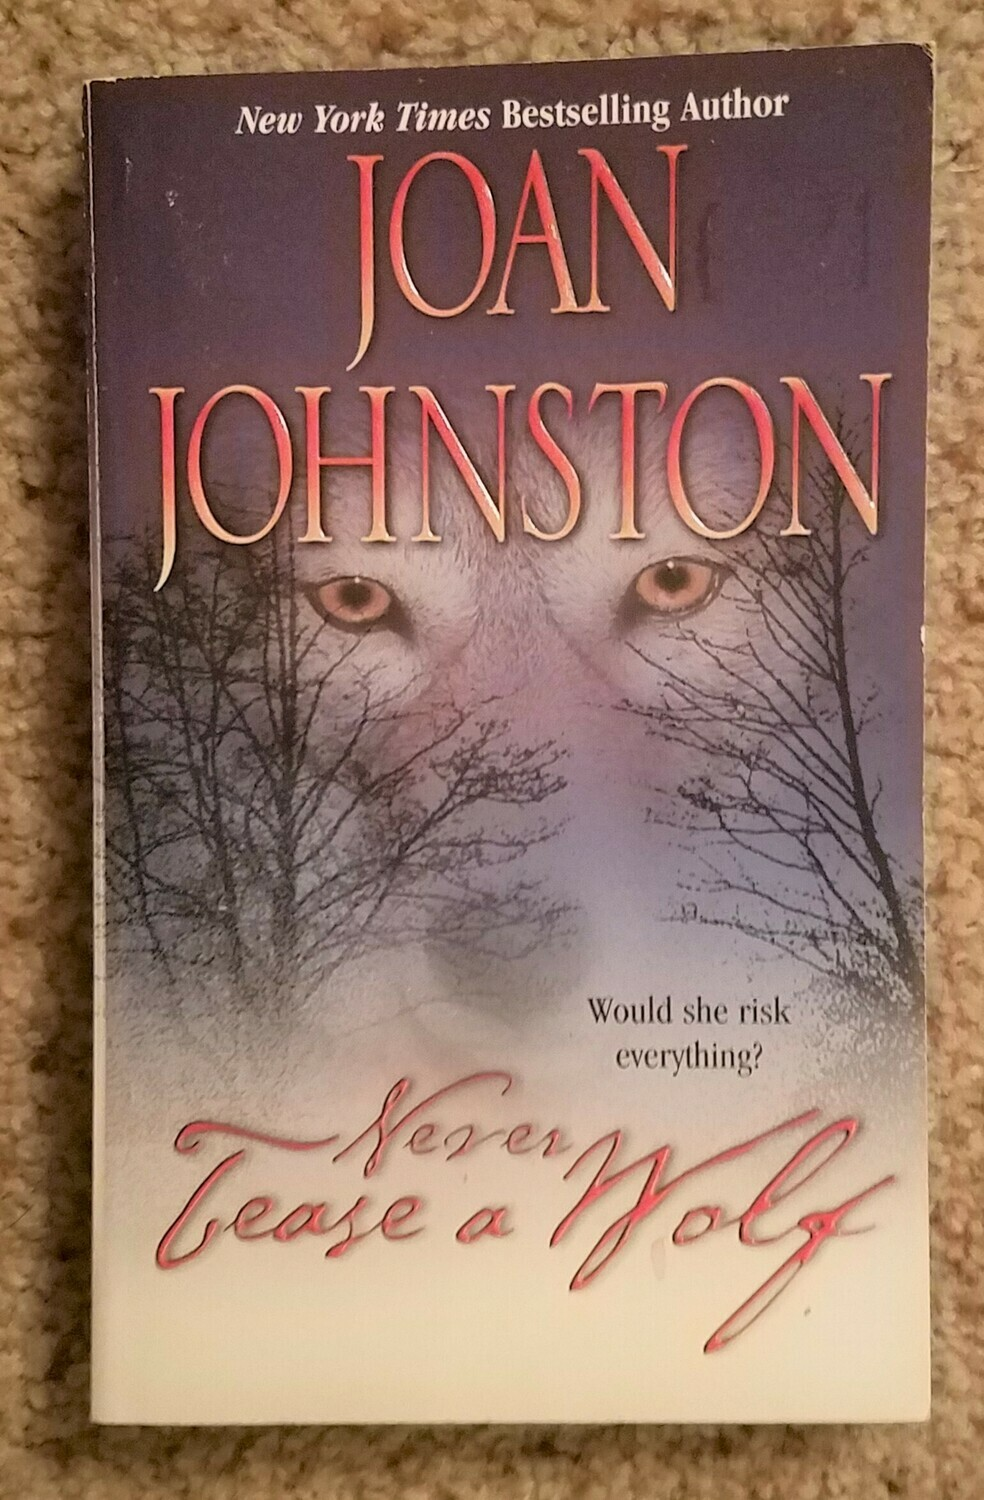 Never Tease a Wolf by Joan Johnston